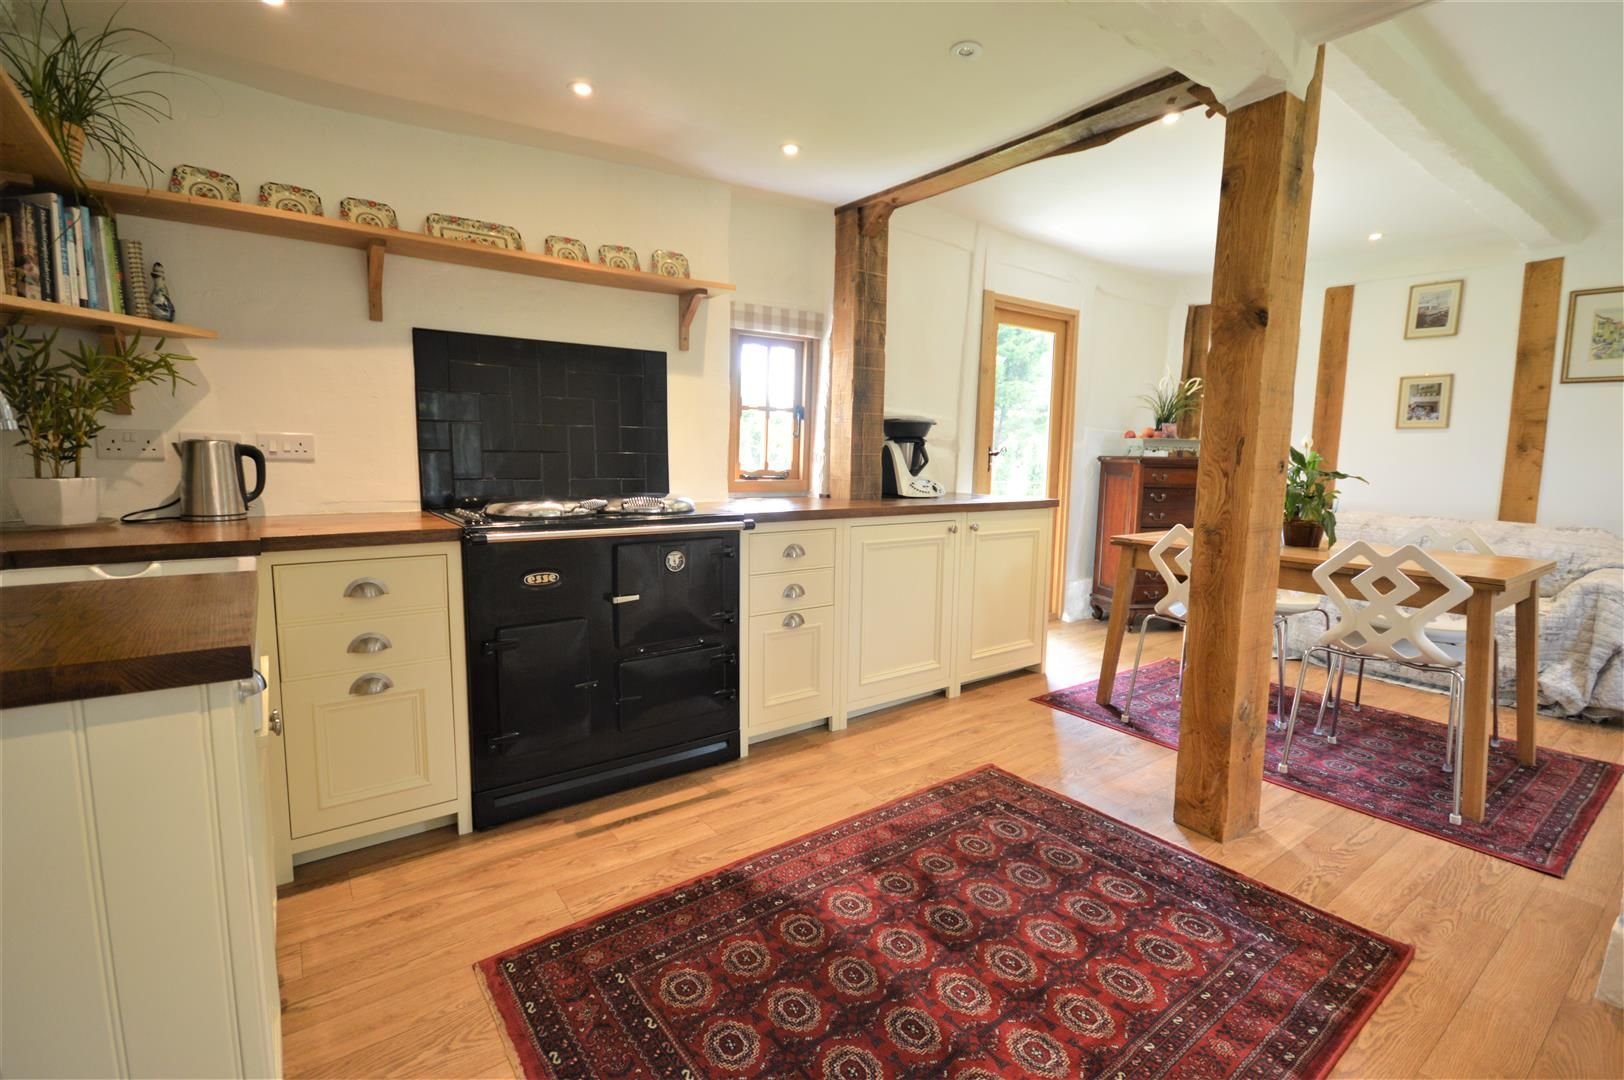 3 bed detached for sale in Eardisland  - Property Image 9